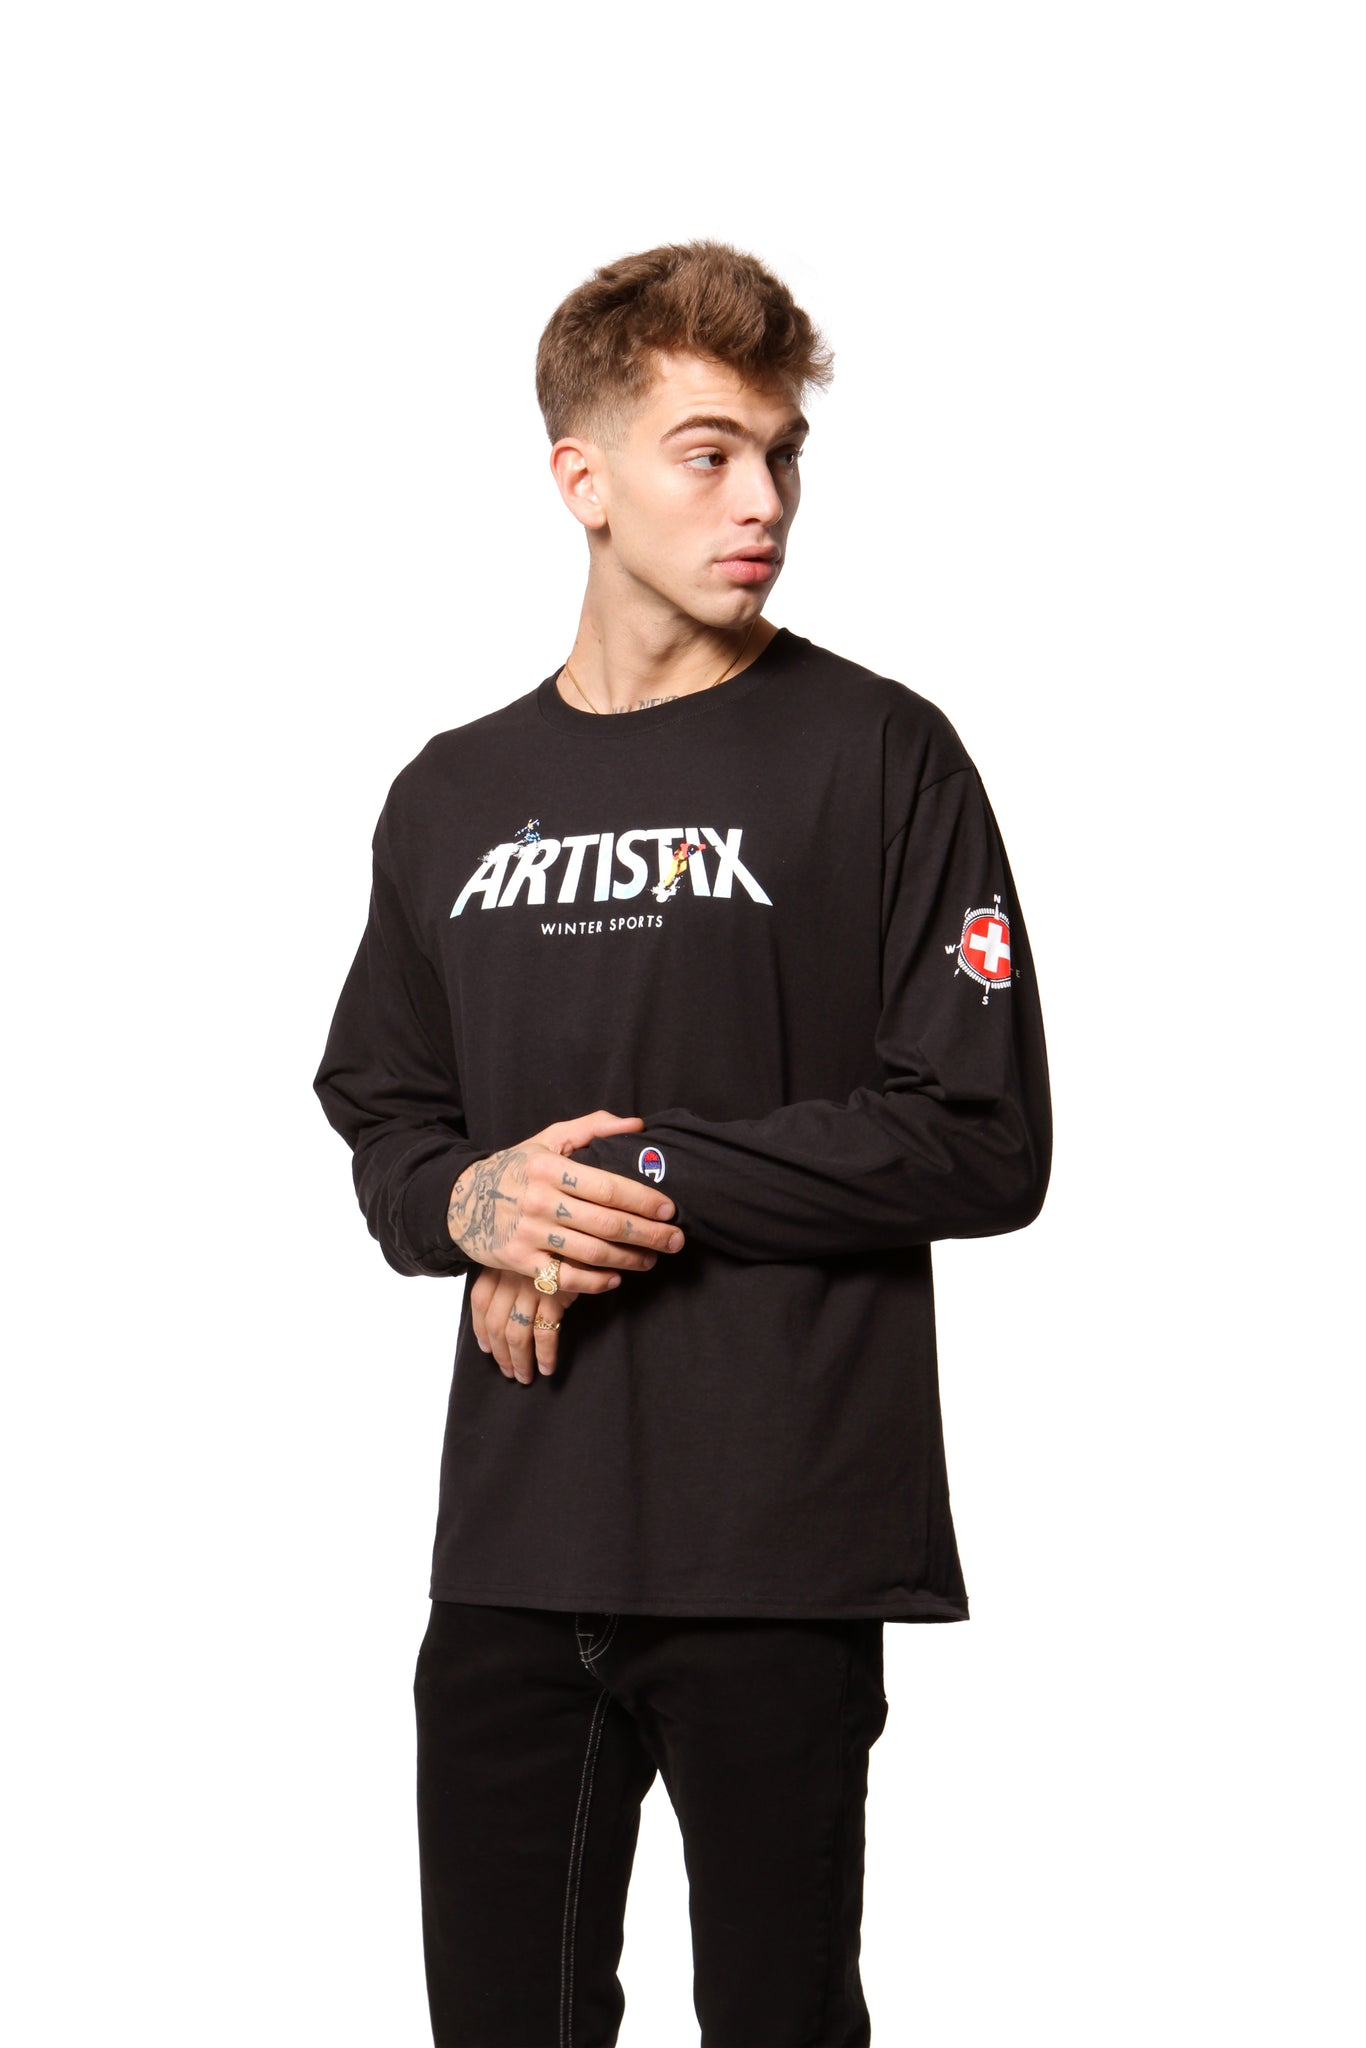 Winter Sports L/S Tee - Black